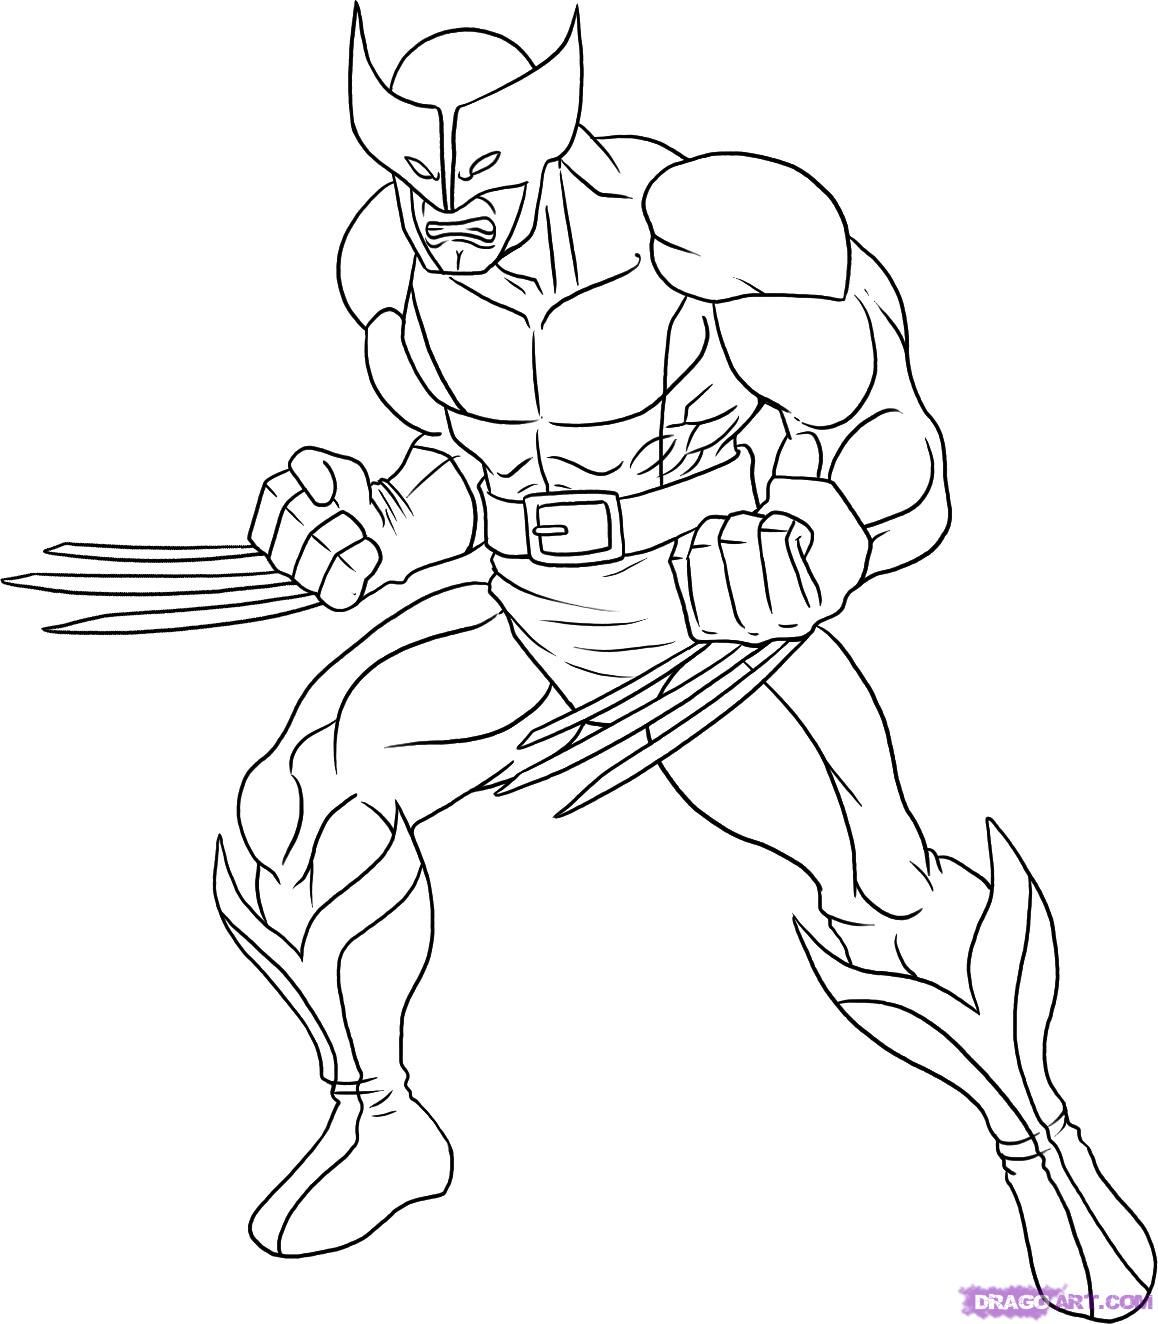 1158x1324 Laundry Room Coloring Pages Neville Land Ranchmeeting Wolverine